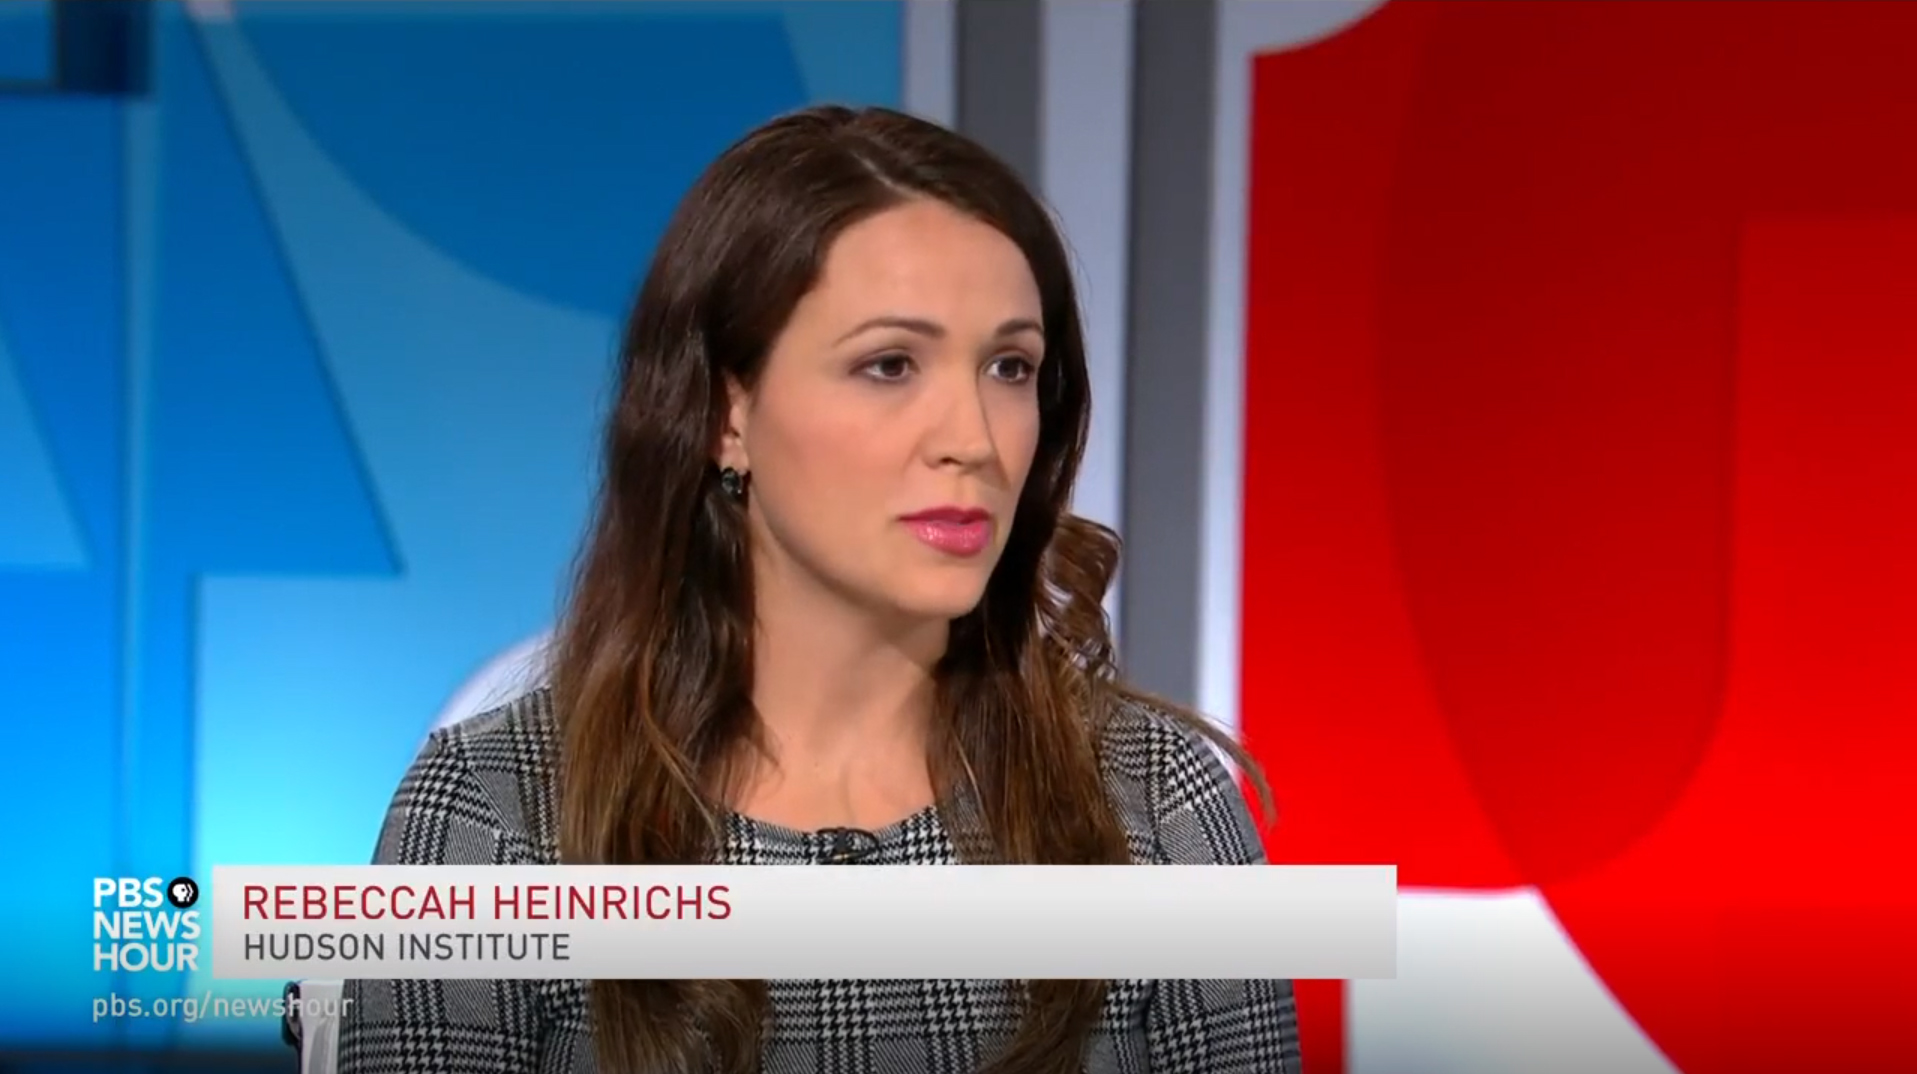 Rebeccah Heinrichs on the PBS NewsHour, October 22, 2018